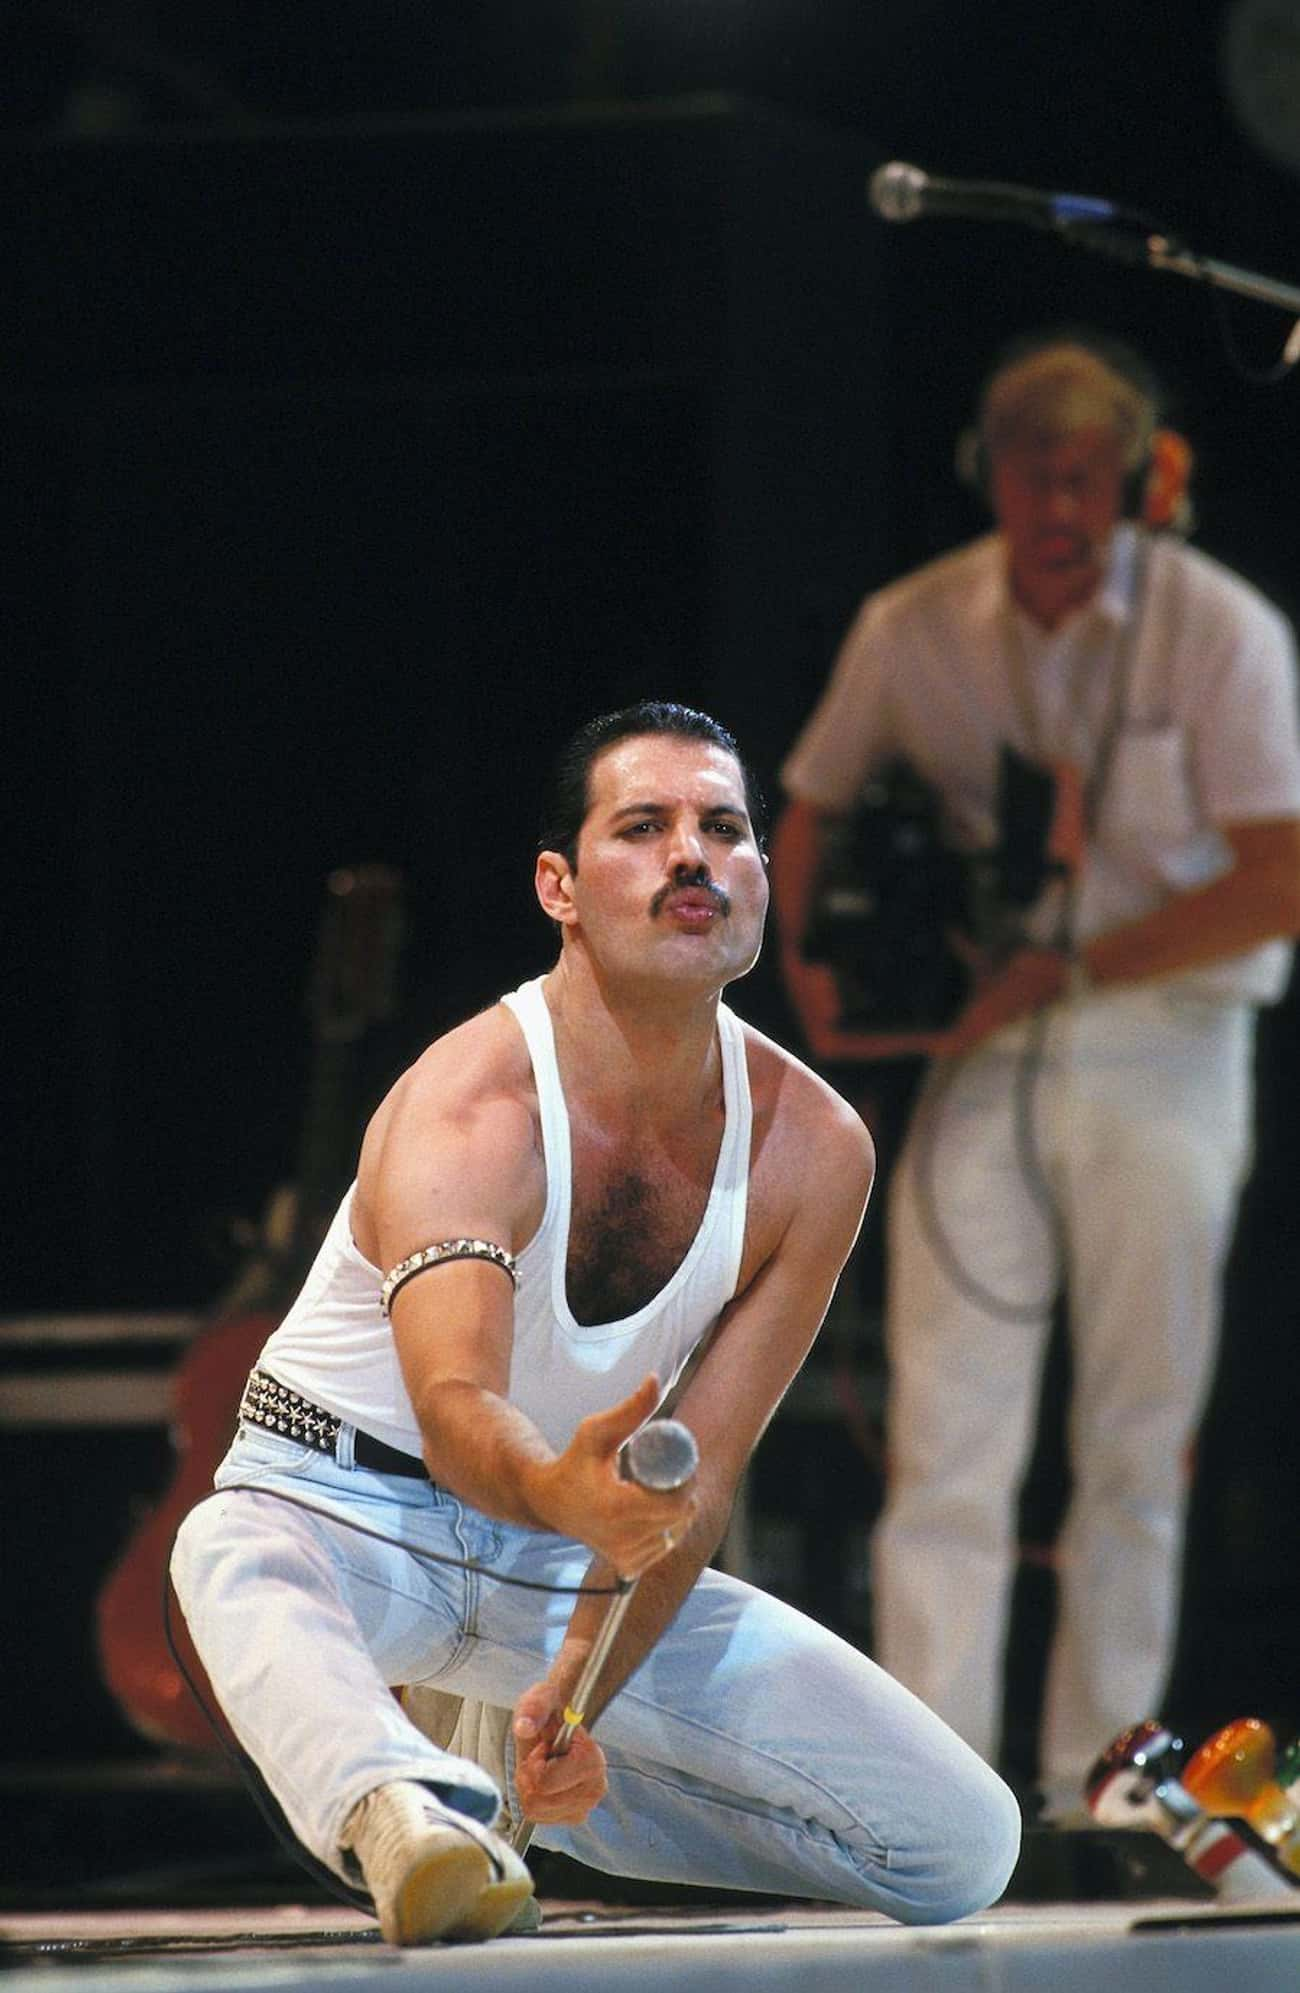 Mercury Wanted His Live Aid Look To Be Just The Bare Essentials To Prove Queen Didn't Need Costumes